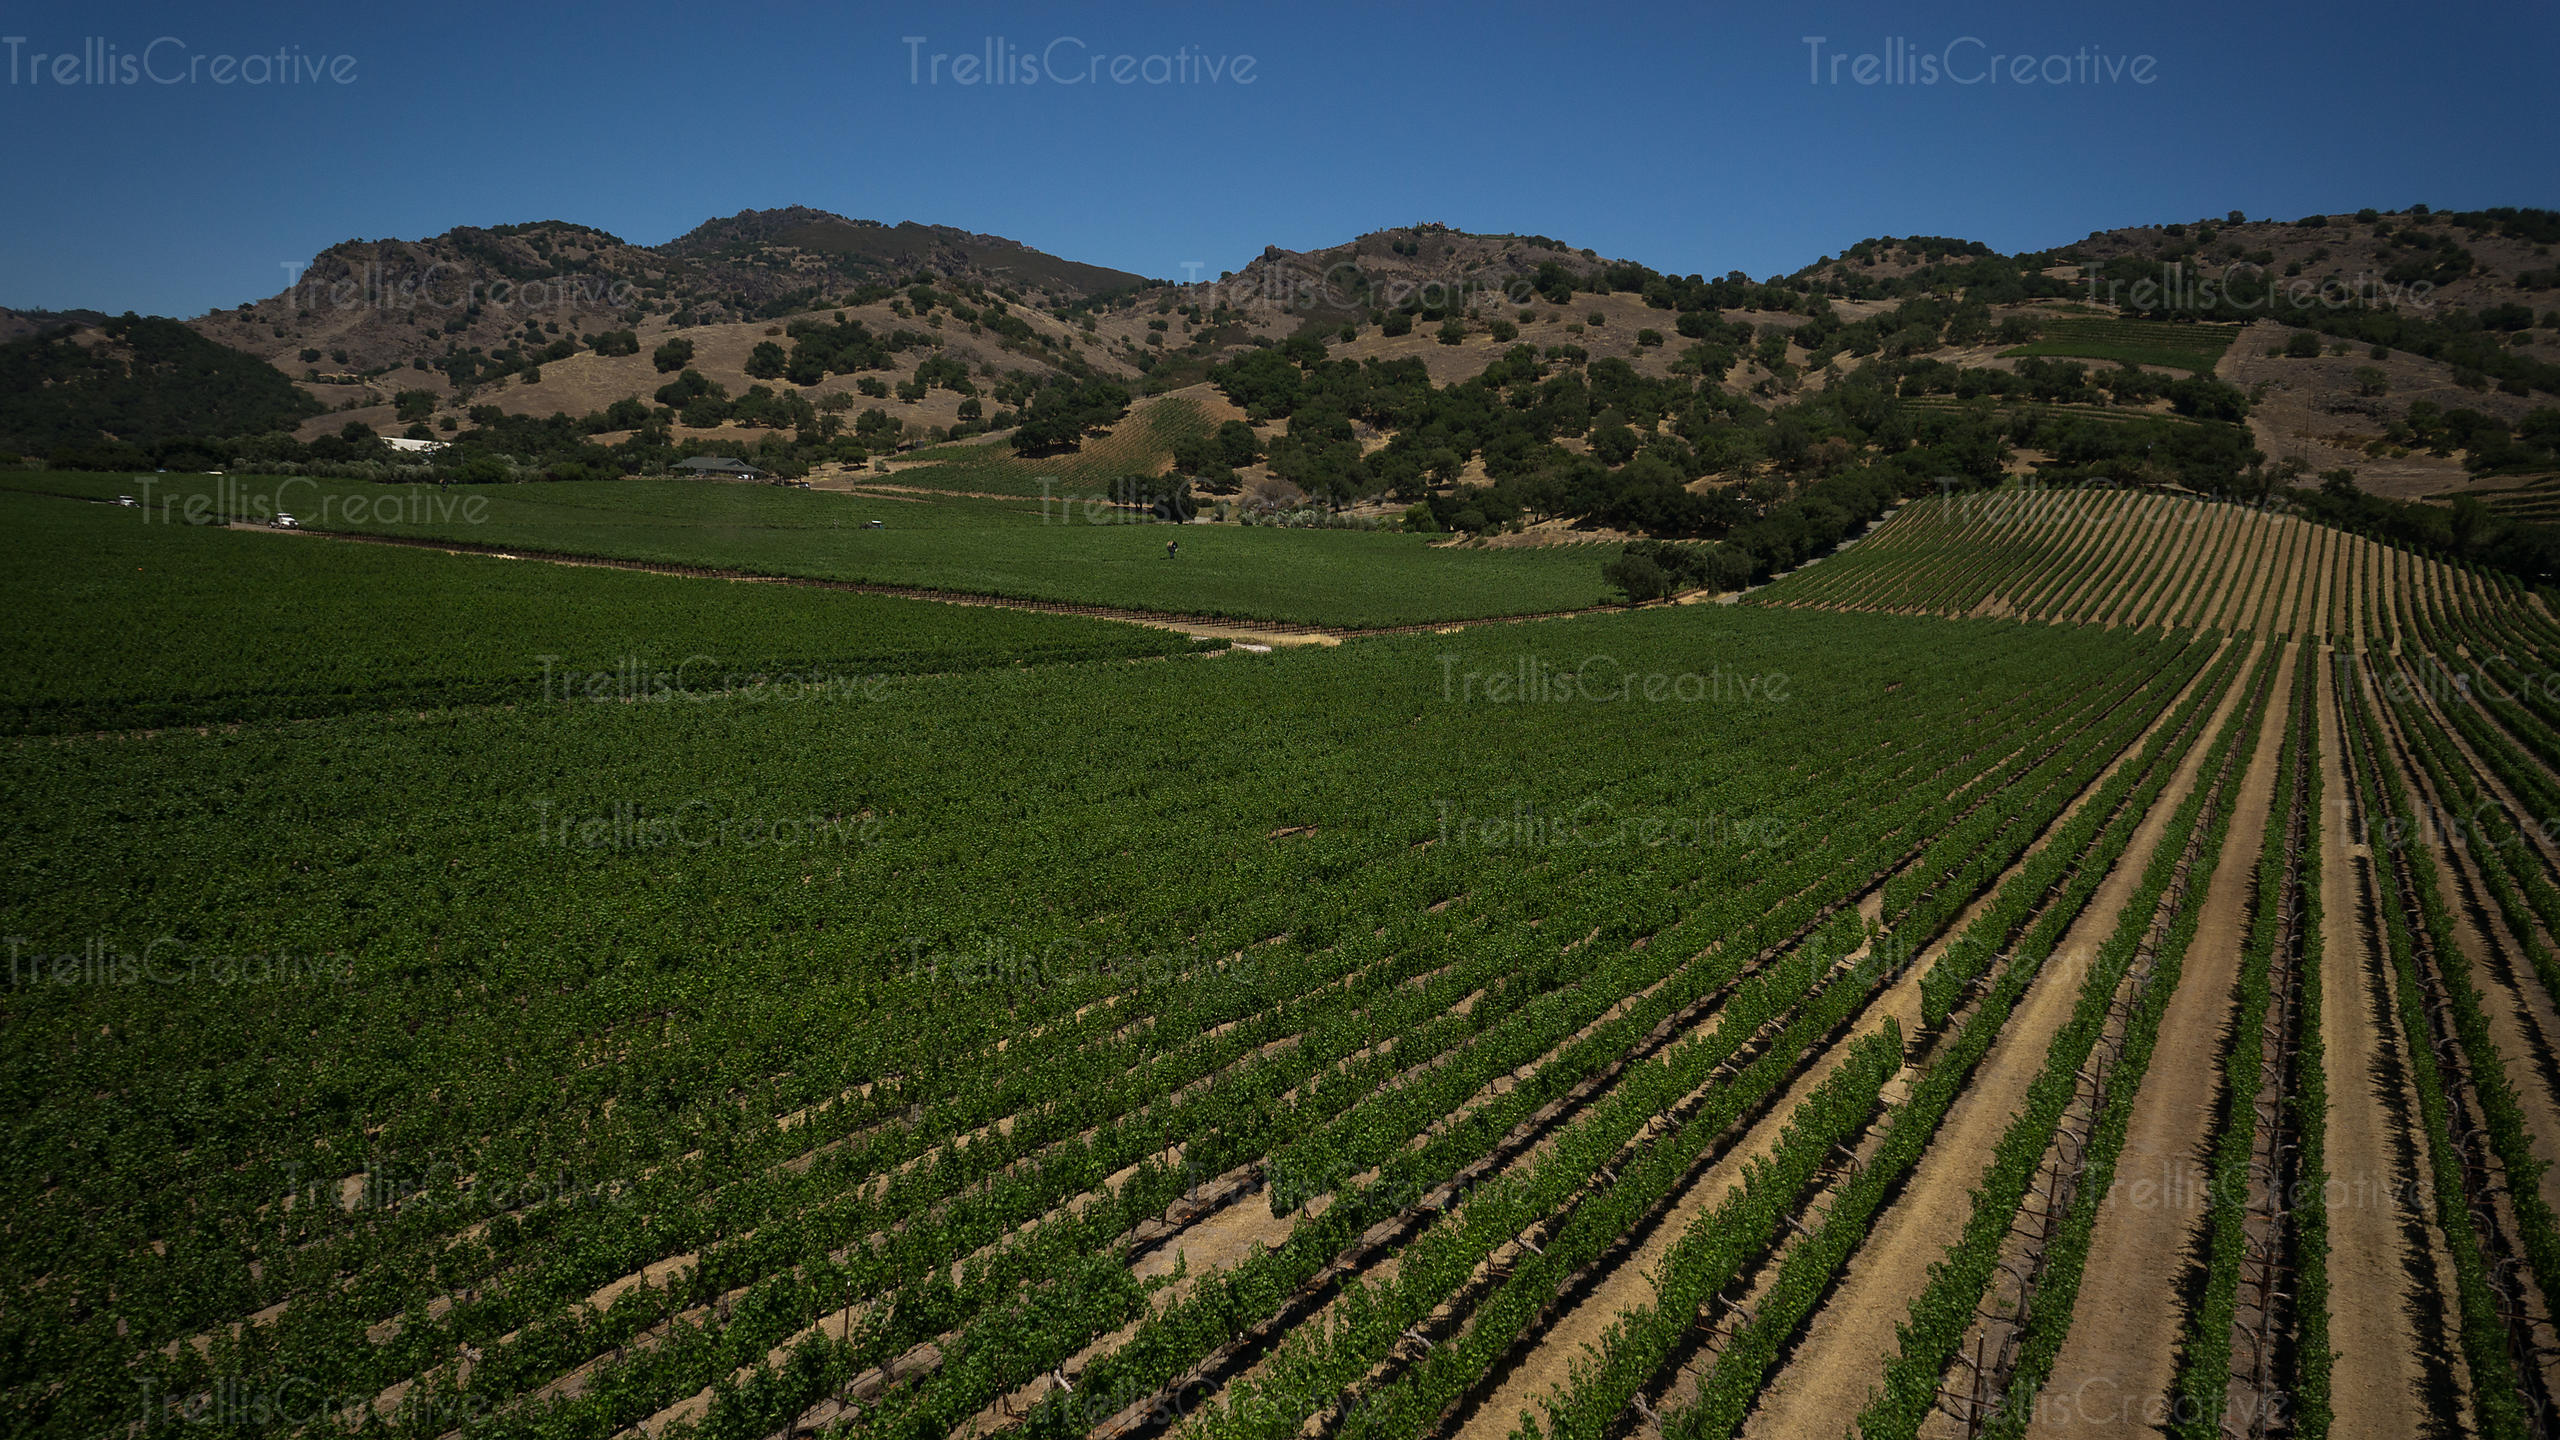 Vineyard in Stags Leap appellation in Napa Valley aerial photo